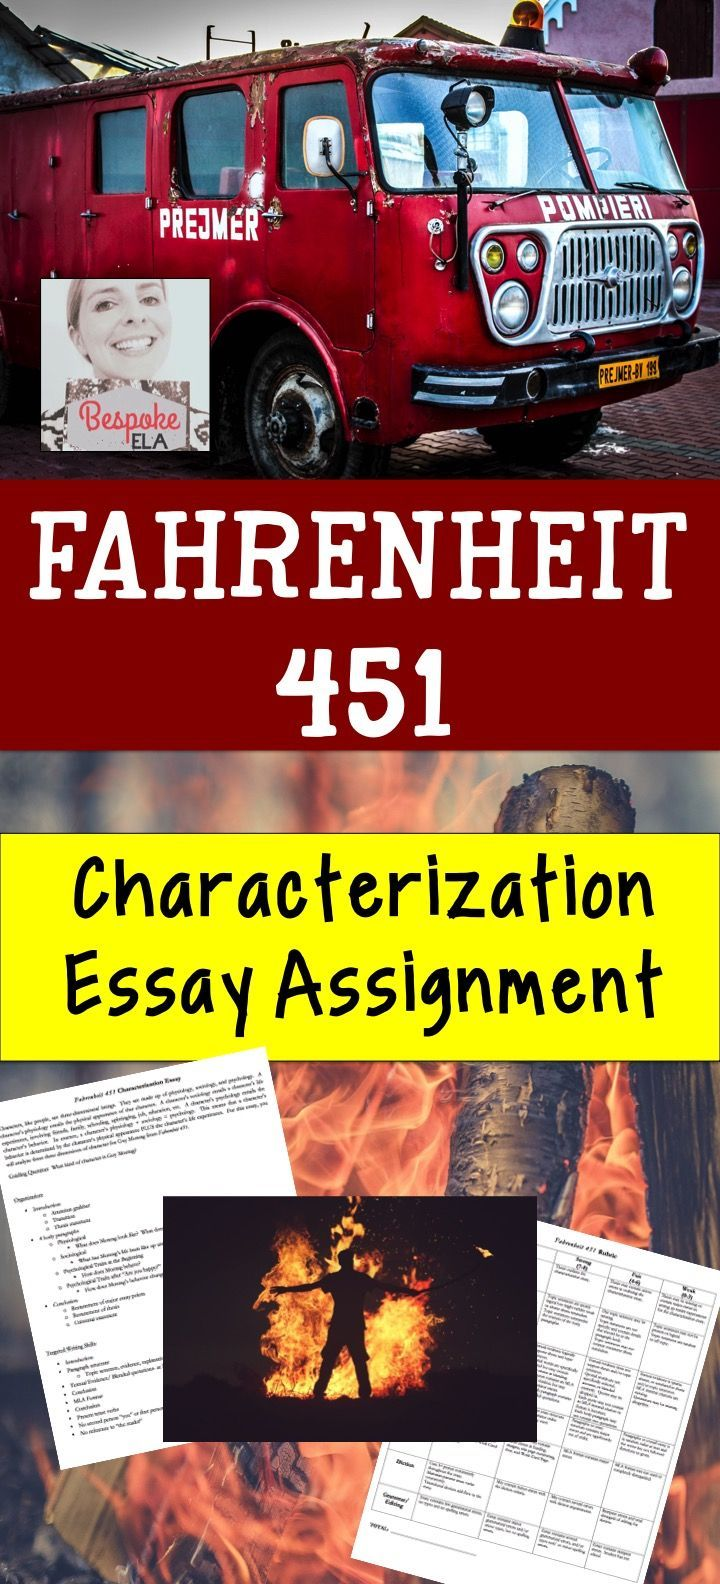 best ideas about sample essay argumentative fahrenheit 451 characterization essay assignment common core